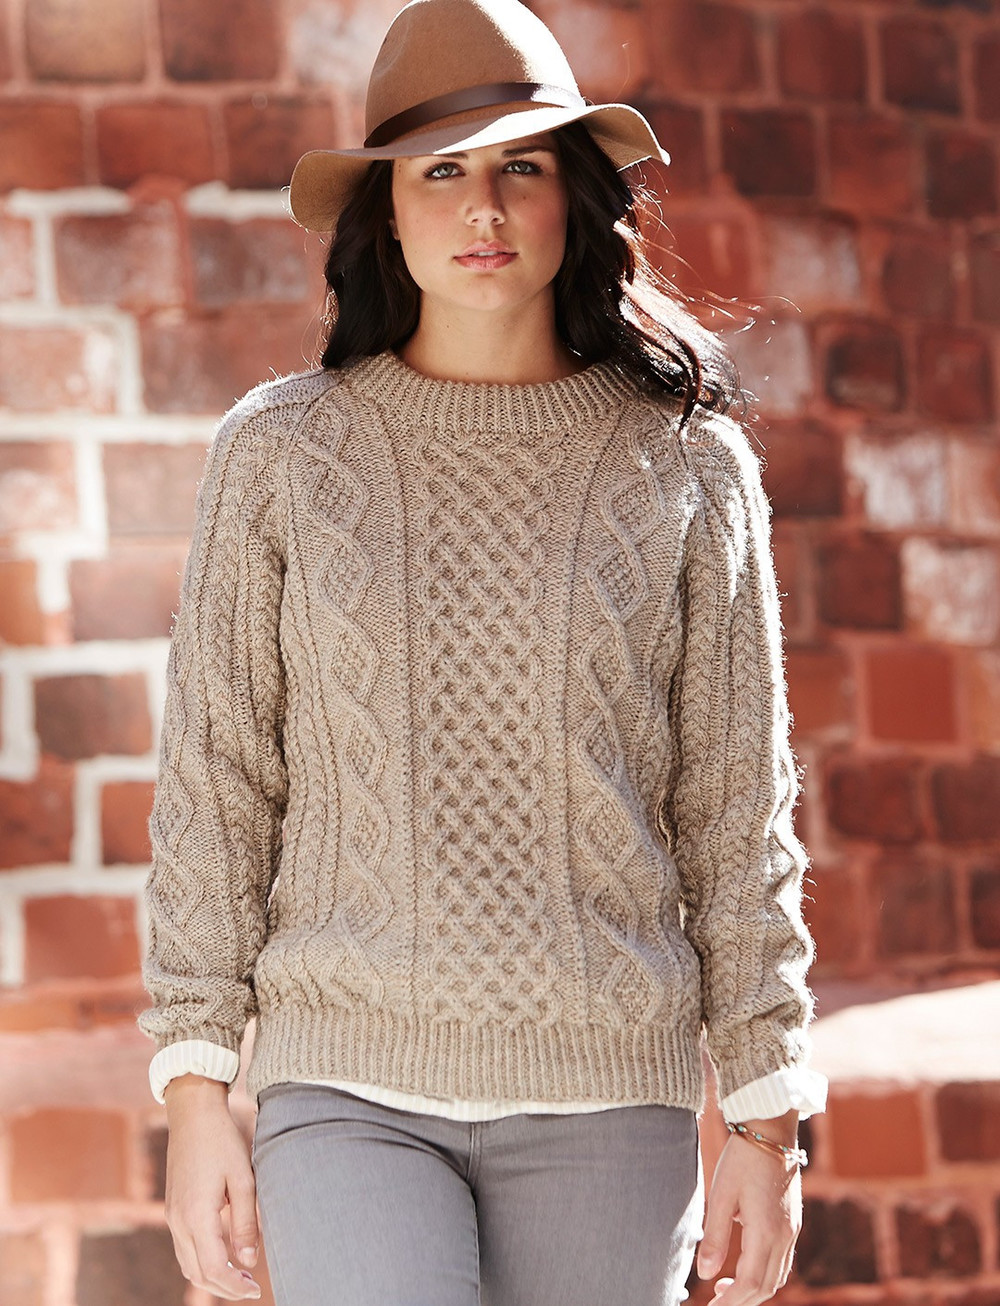 Knitted Sweater Patterns | Dress images